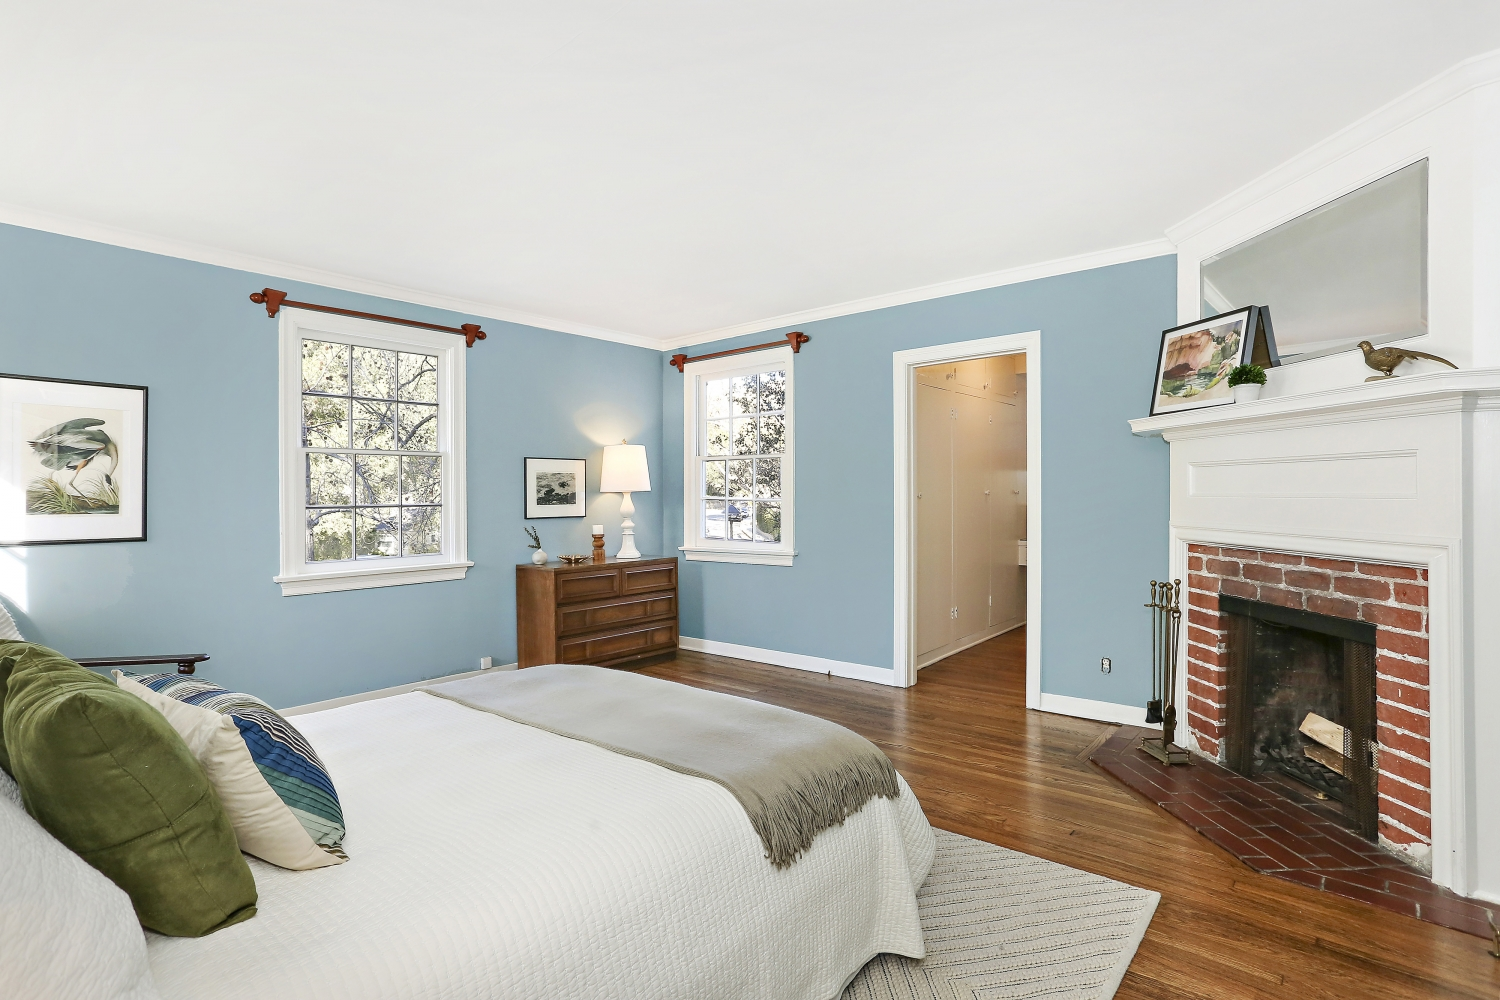 Pennsylvania Dutch Cottage Gerard Colford for sale. 2310 E Chevy Chase Dr. Glendale CA - Master Bedroom with fireplace